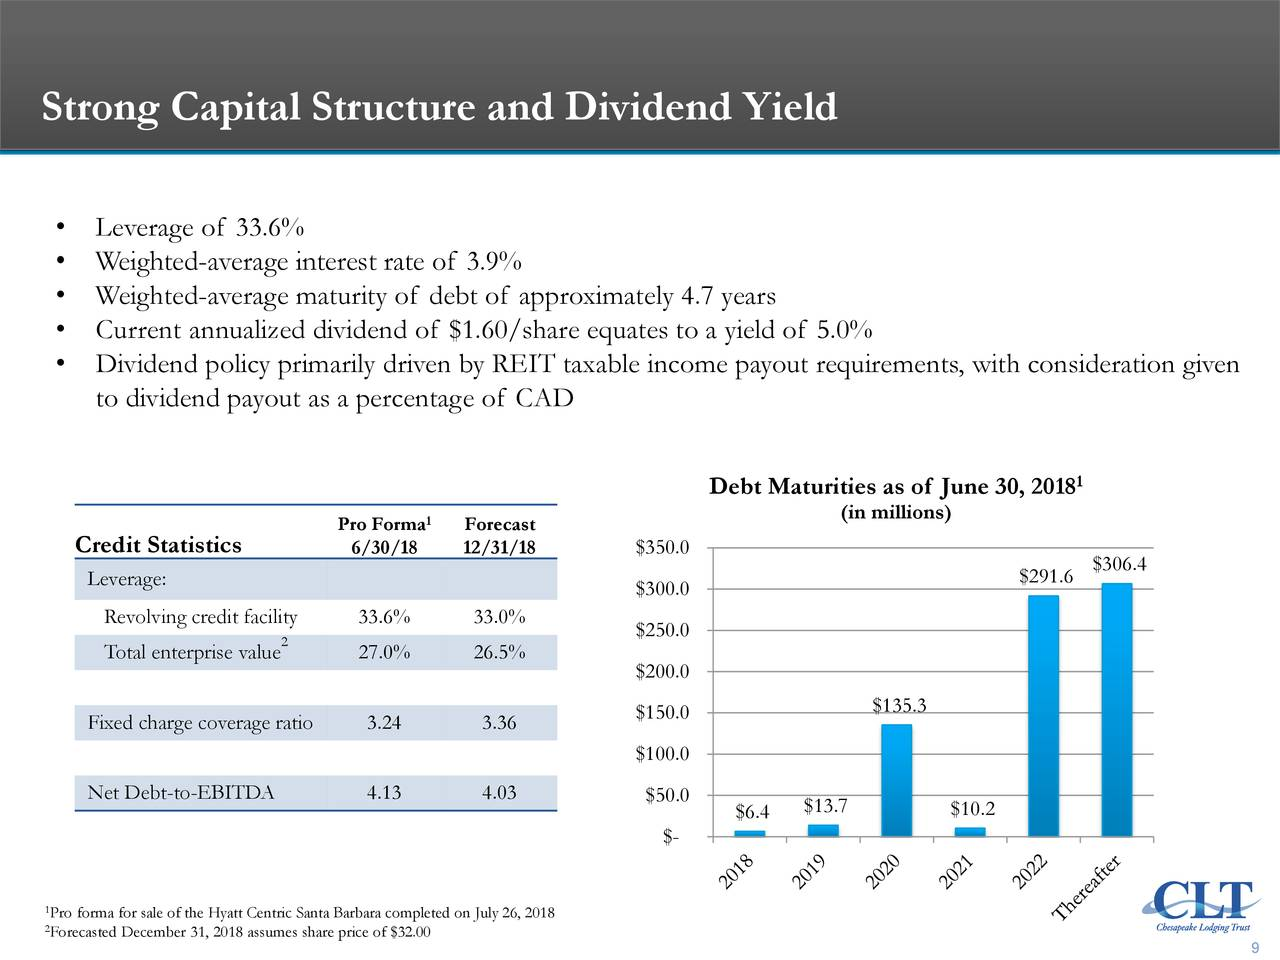 dividend policy capital structure Growth opportunities, capital structure and dividend policy following myers (1977) , growth opportunities are considered in terms of the proportion of firm value accounted for by assets-in-place the lower the fraction of firm value represented by assets-in-place, the greater are the firm's growth opportunities or ios.